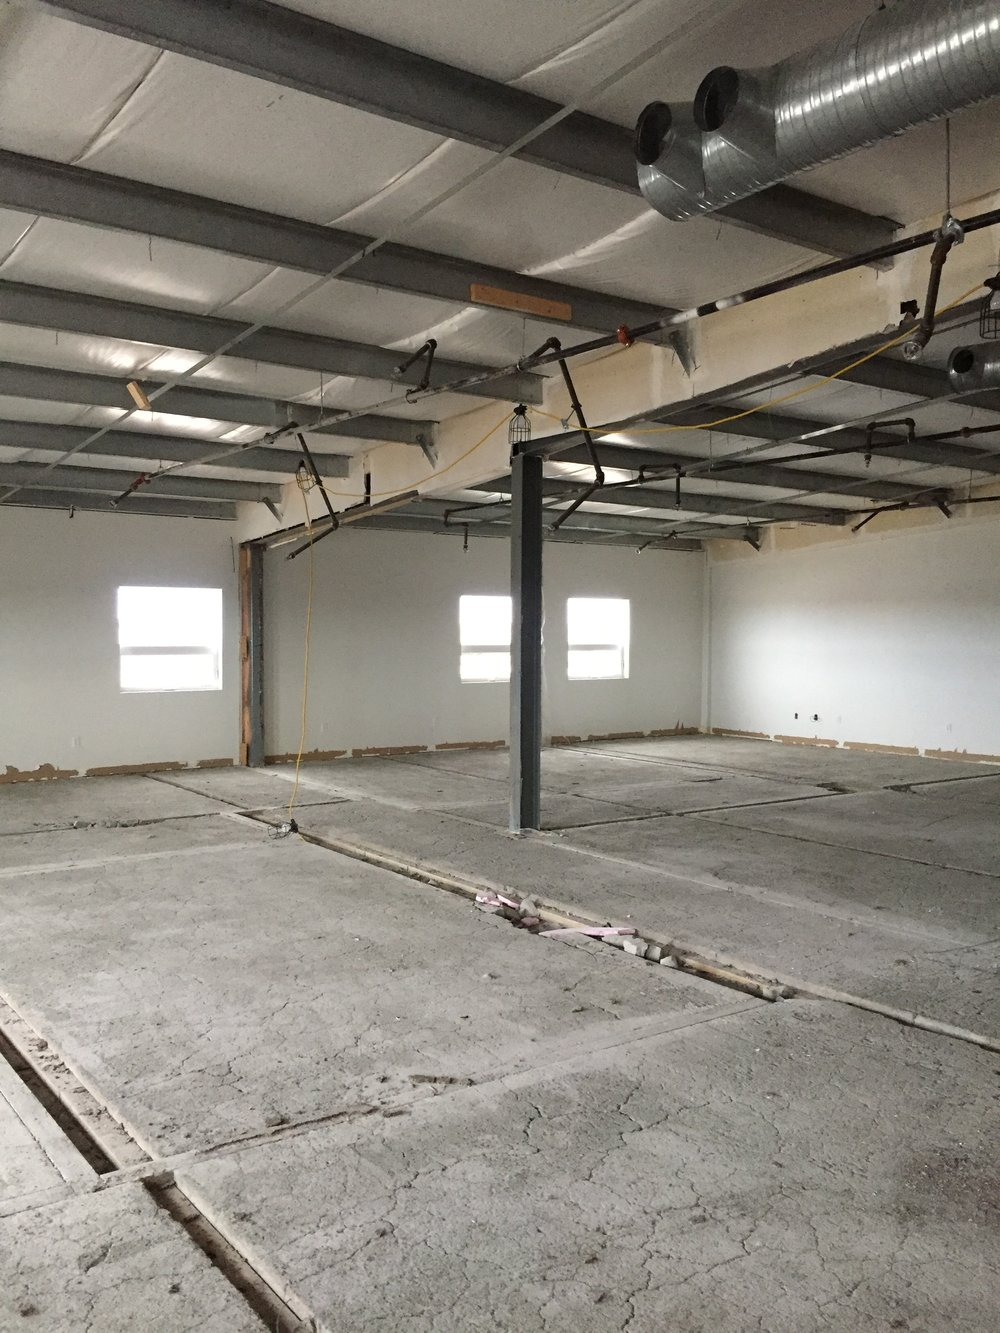 T-bar removed and floor prepped